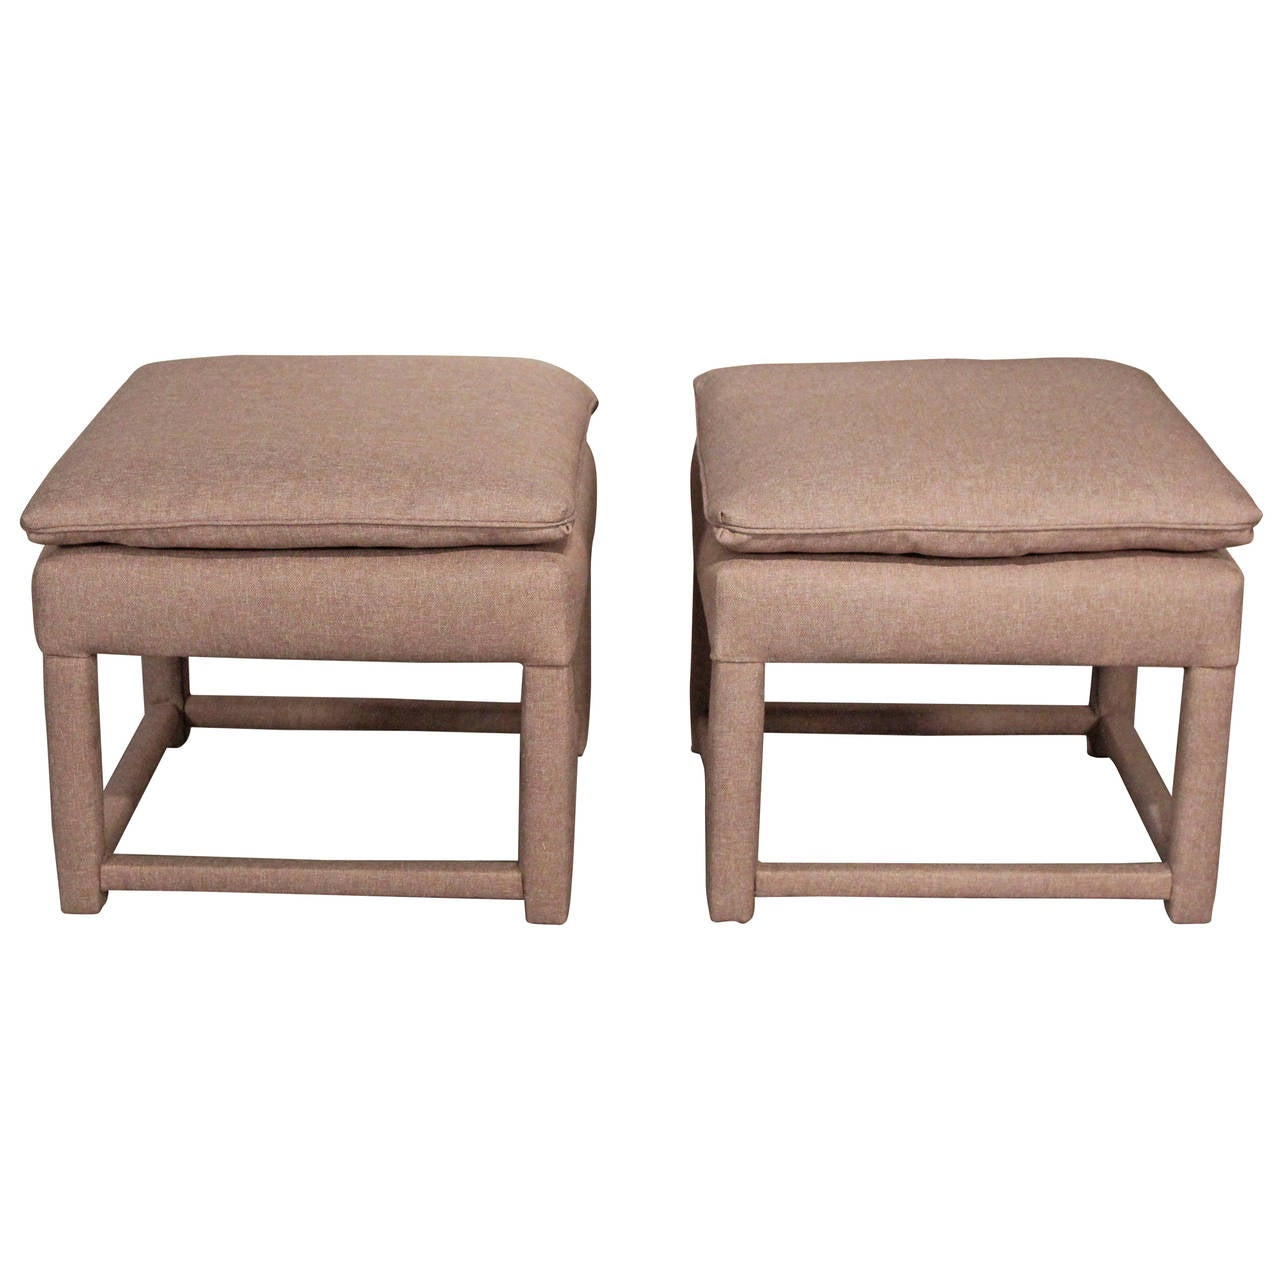 pair of upholstered ottomans parsons style for sale at 1stdibs. Black Bedroom Furniture Sets. Home Design Ideas